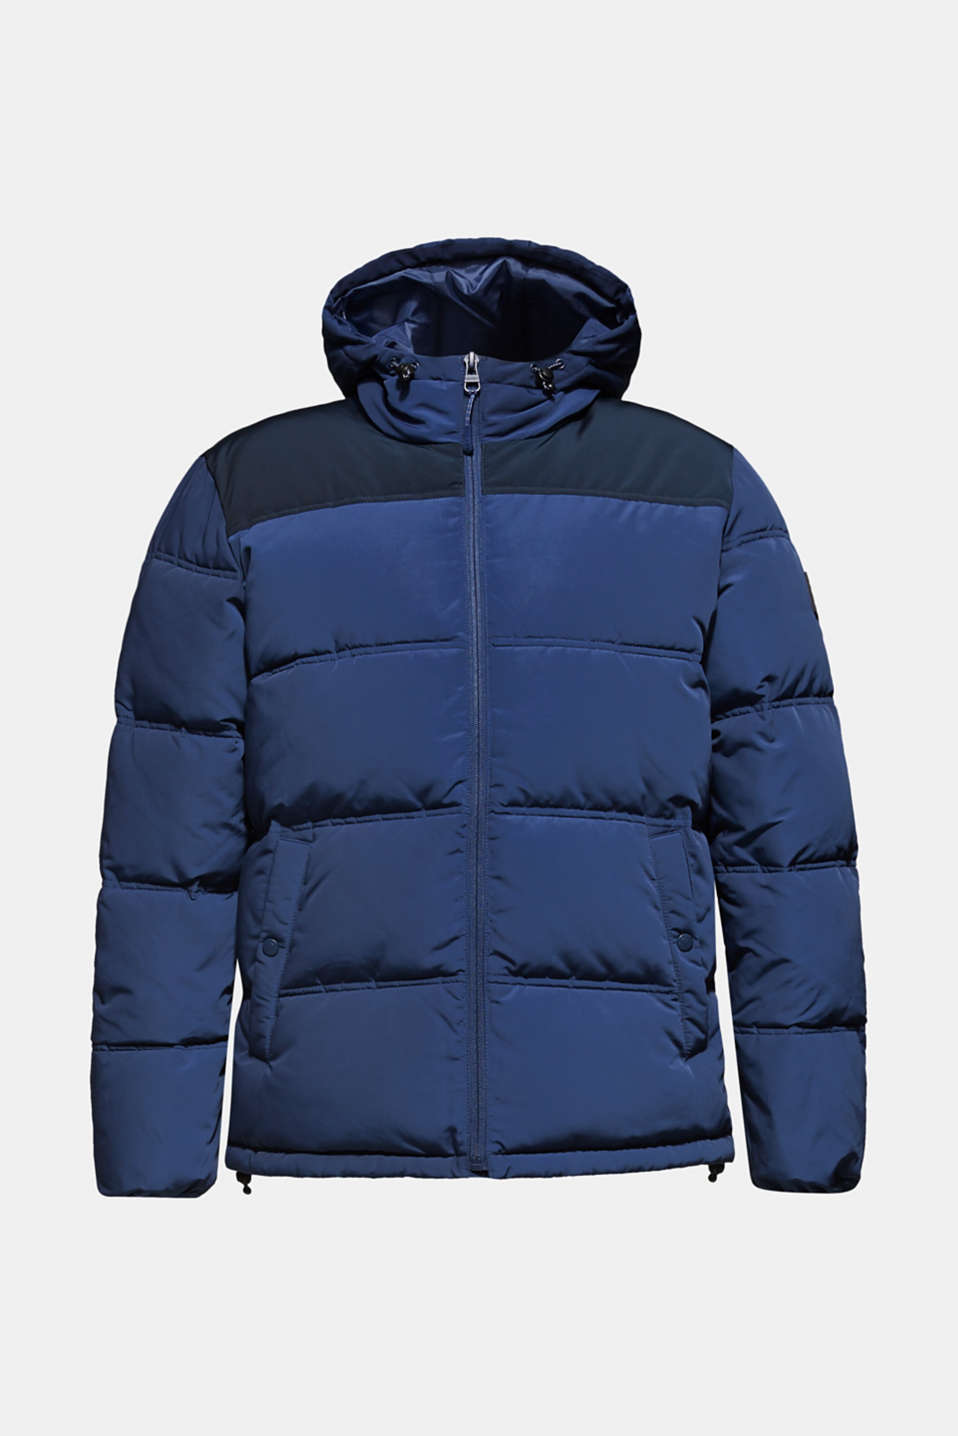 Jackets outdoor woven, BLUE, detail image number 7